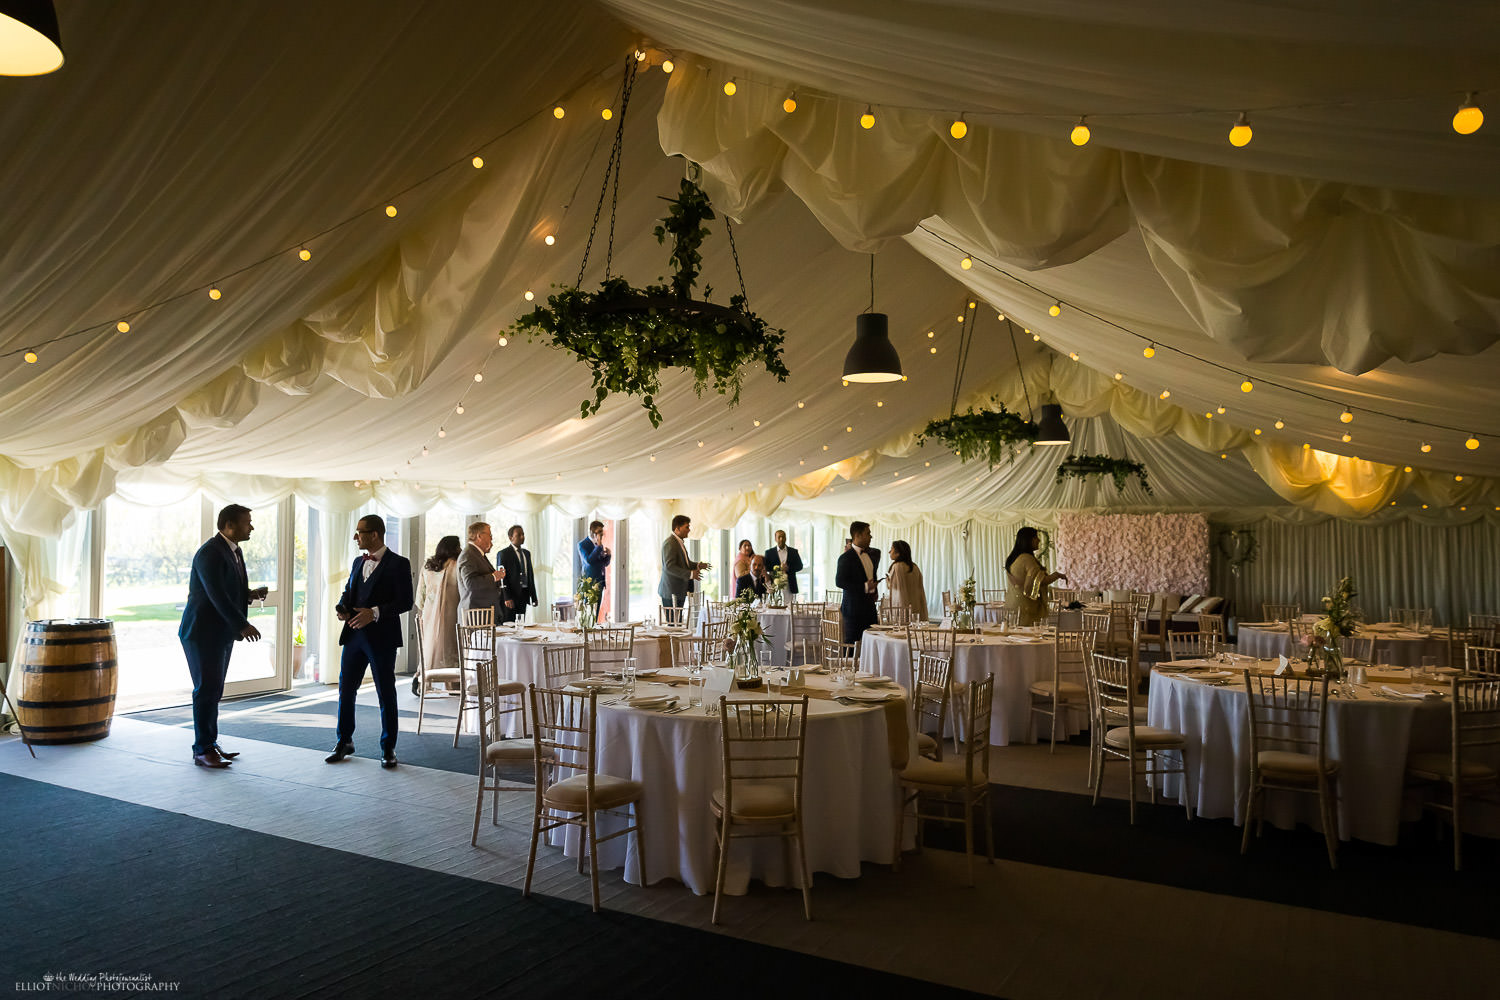 Vallum Farm events area decorated for an Asian engagement party. Photo by Elliot Nichol Photography.